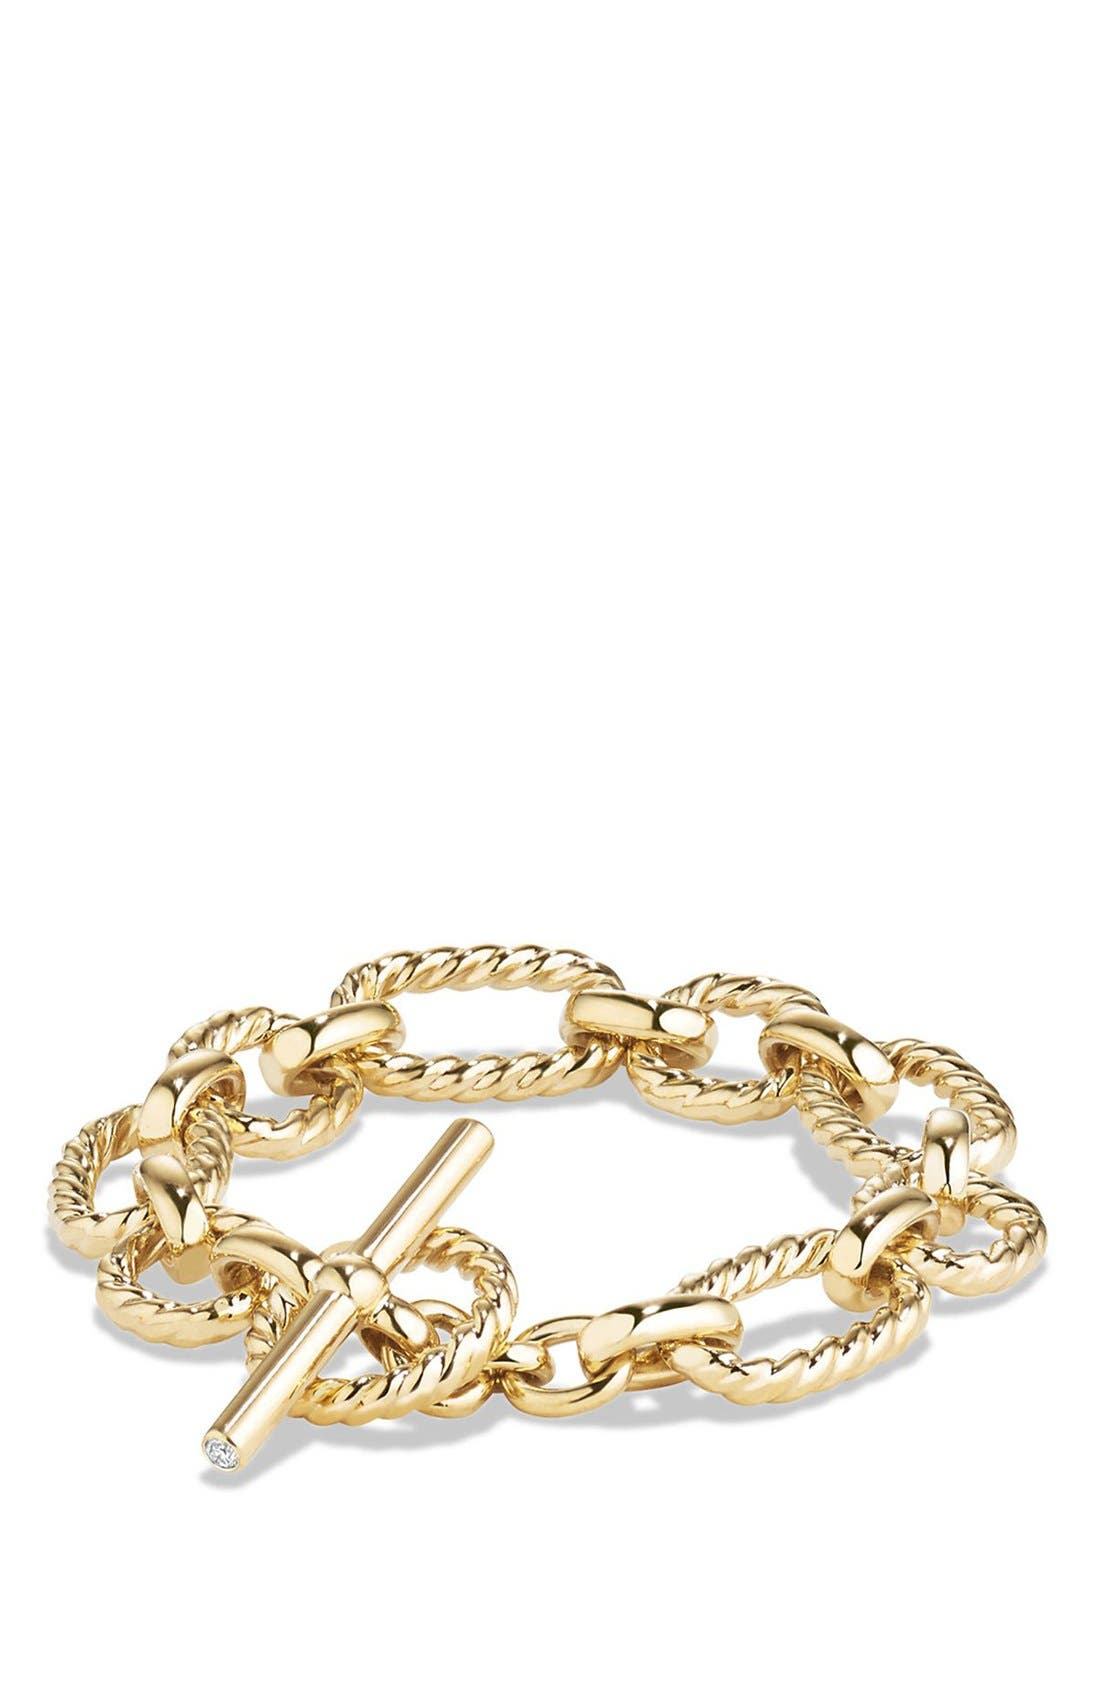 'Chain' Cushion Link Bracelet with Diamonds in 18K Gold,                             Main thumbnail 1, color,                             710